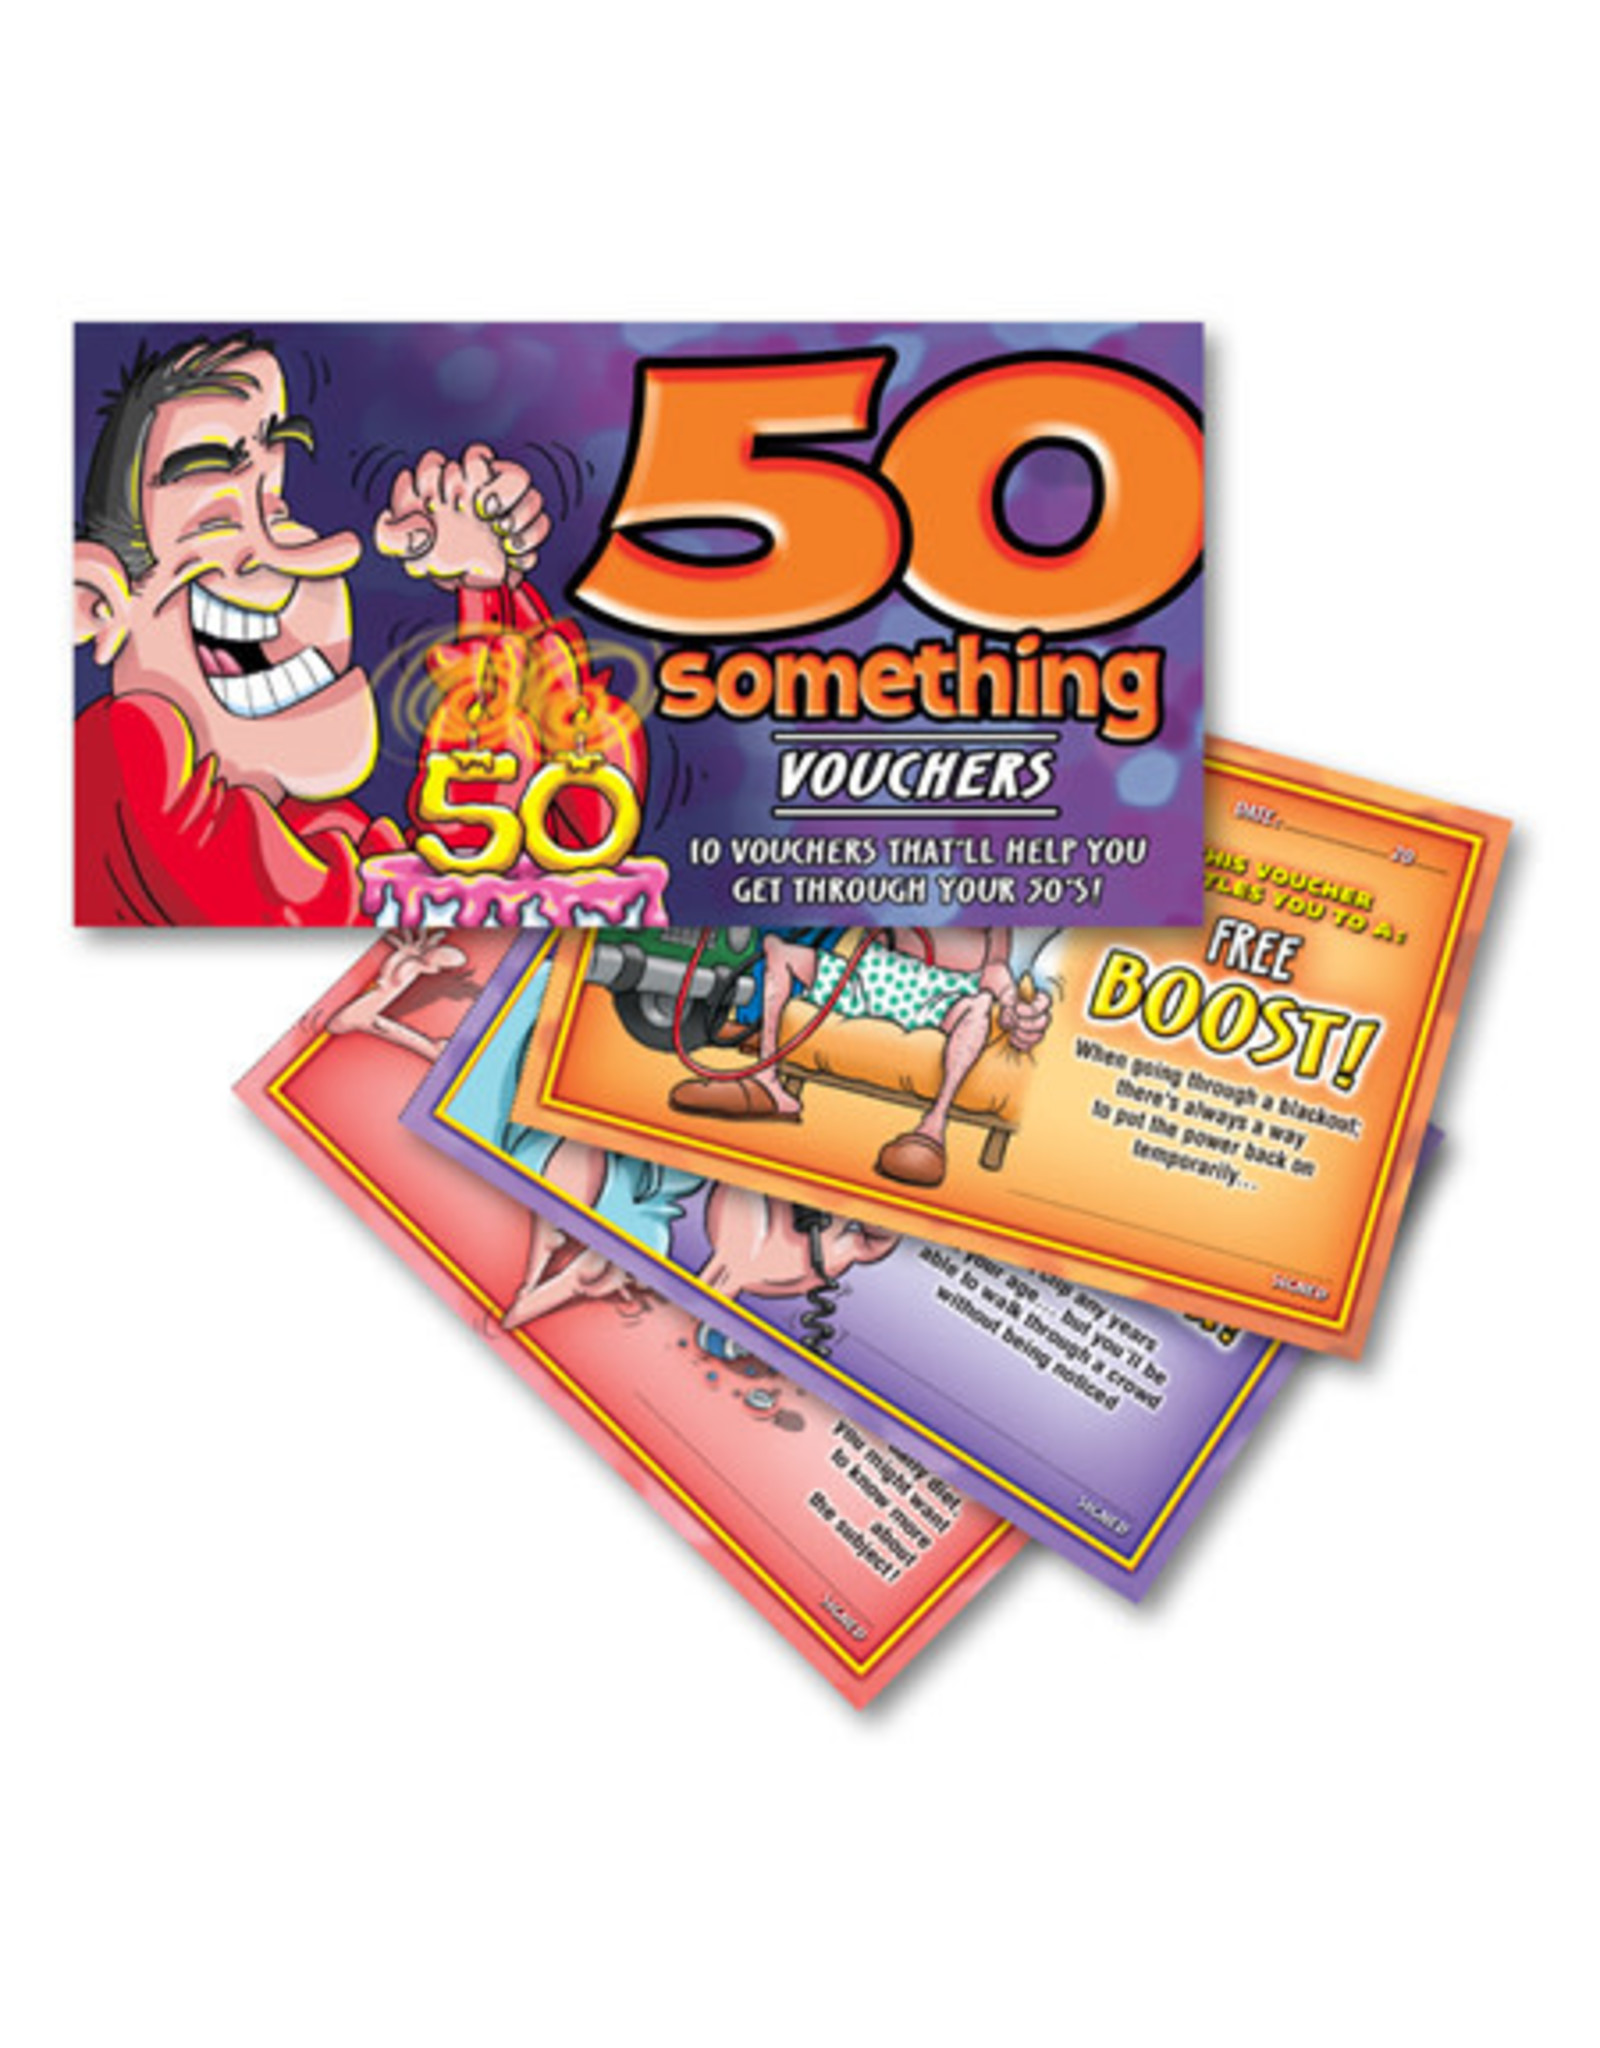 Ozze Creations 50 Something Vouchers - For Him